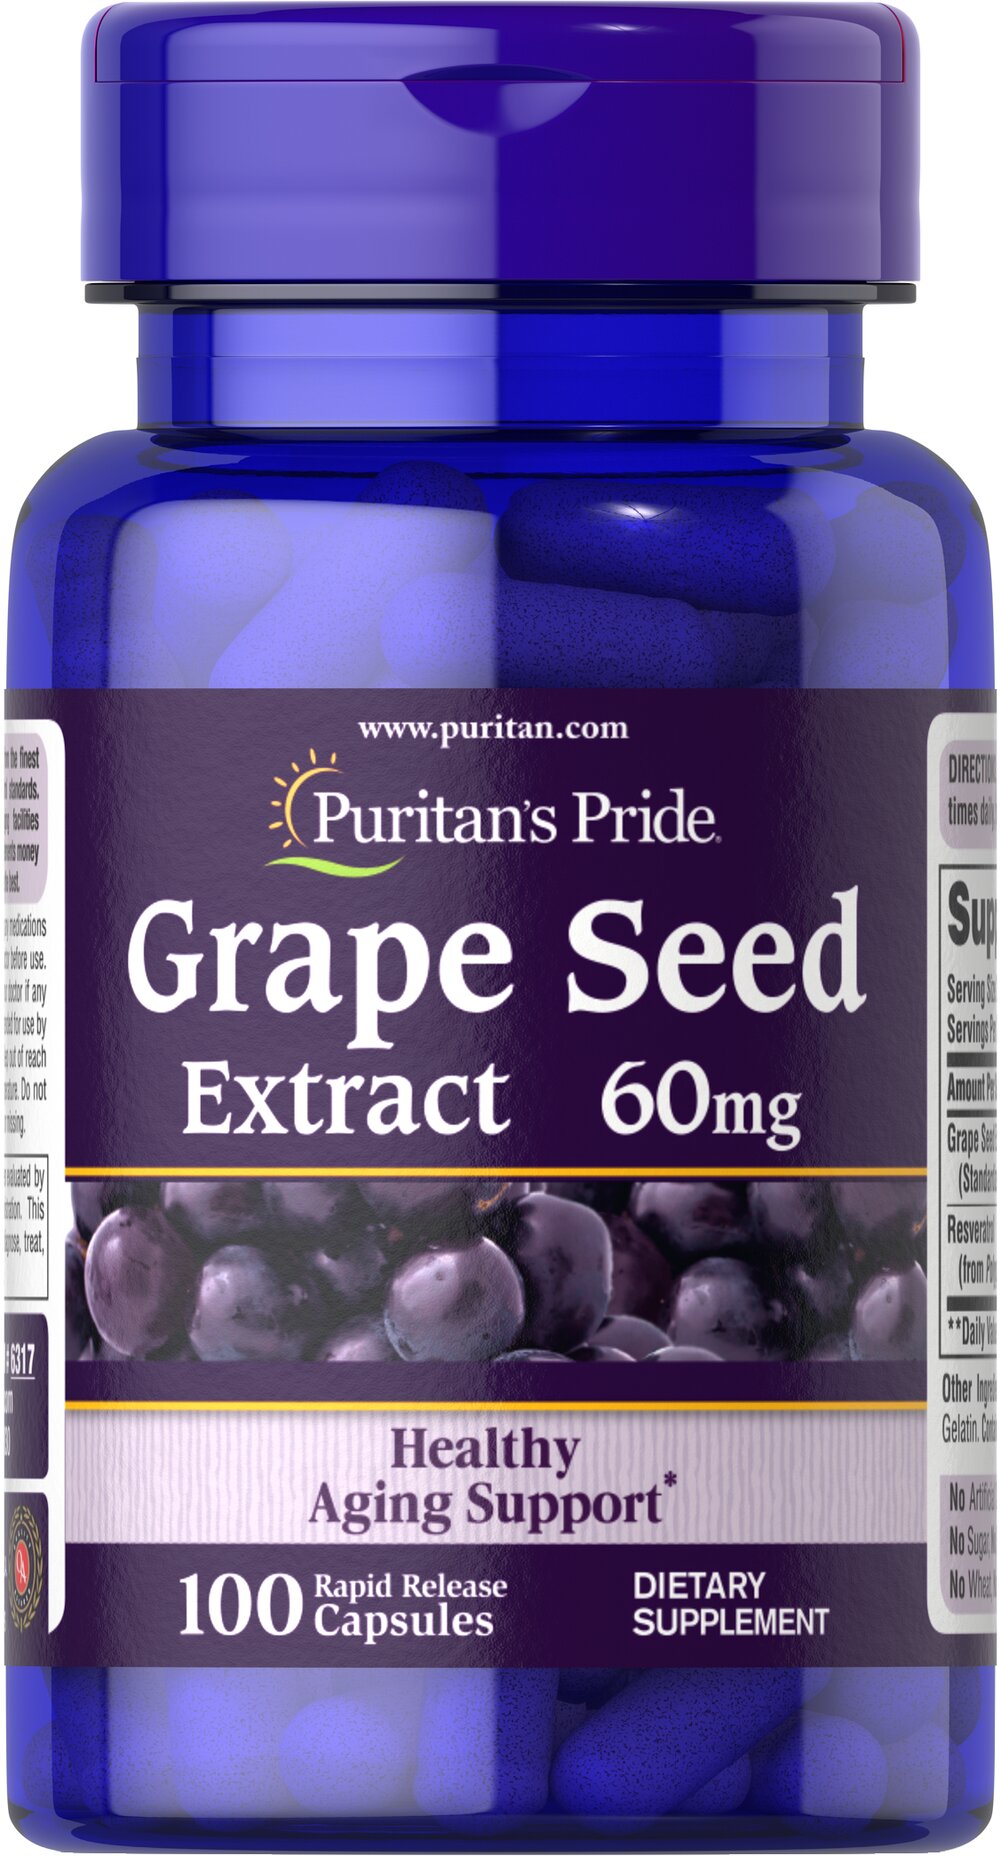 Resveratrol/Grape Extract 60 mg <p>Our <b>Grape Extract</b> contains natural extracts of both the skin and seeds of the grape. This product contains flavonoid polyphenols and <b>resveratrol, the beneficial substance found in red wine</b>.** Grape Extract has been shown to help support heart health.**  Supplementing with Grape Extract promotes antioxidant support  by  helping to fight cell-damaging free radicals**.</p>   100 Capsules 60 mg $20.59